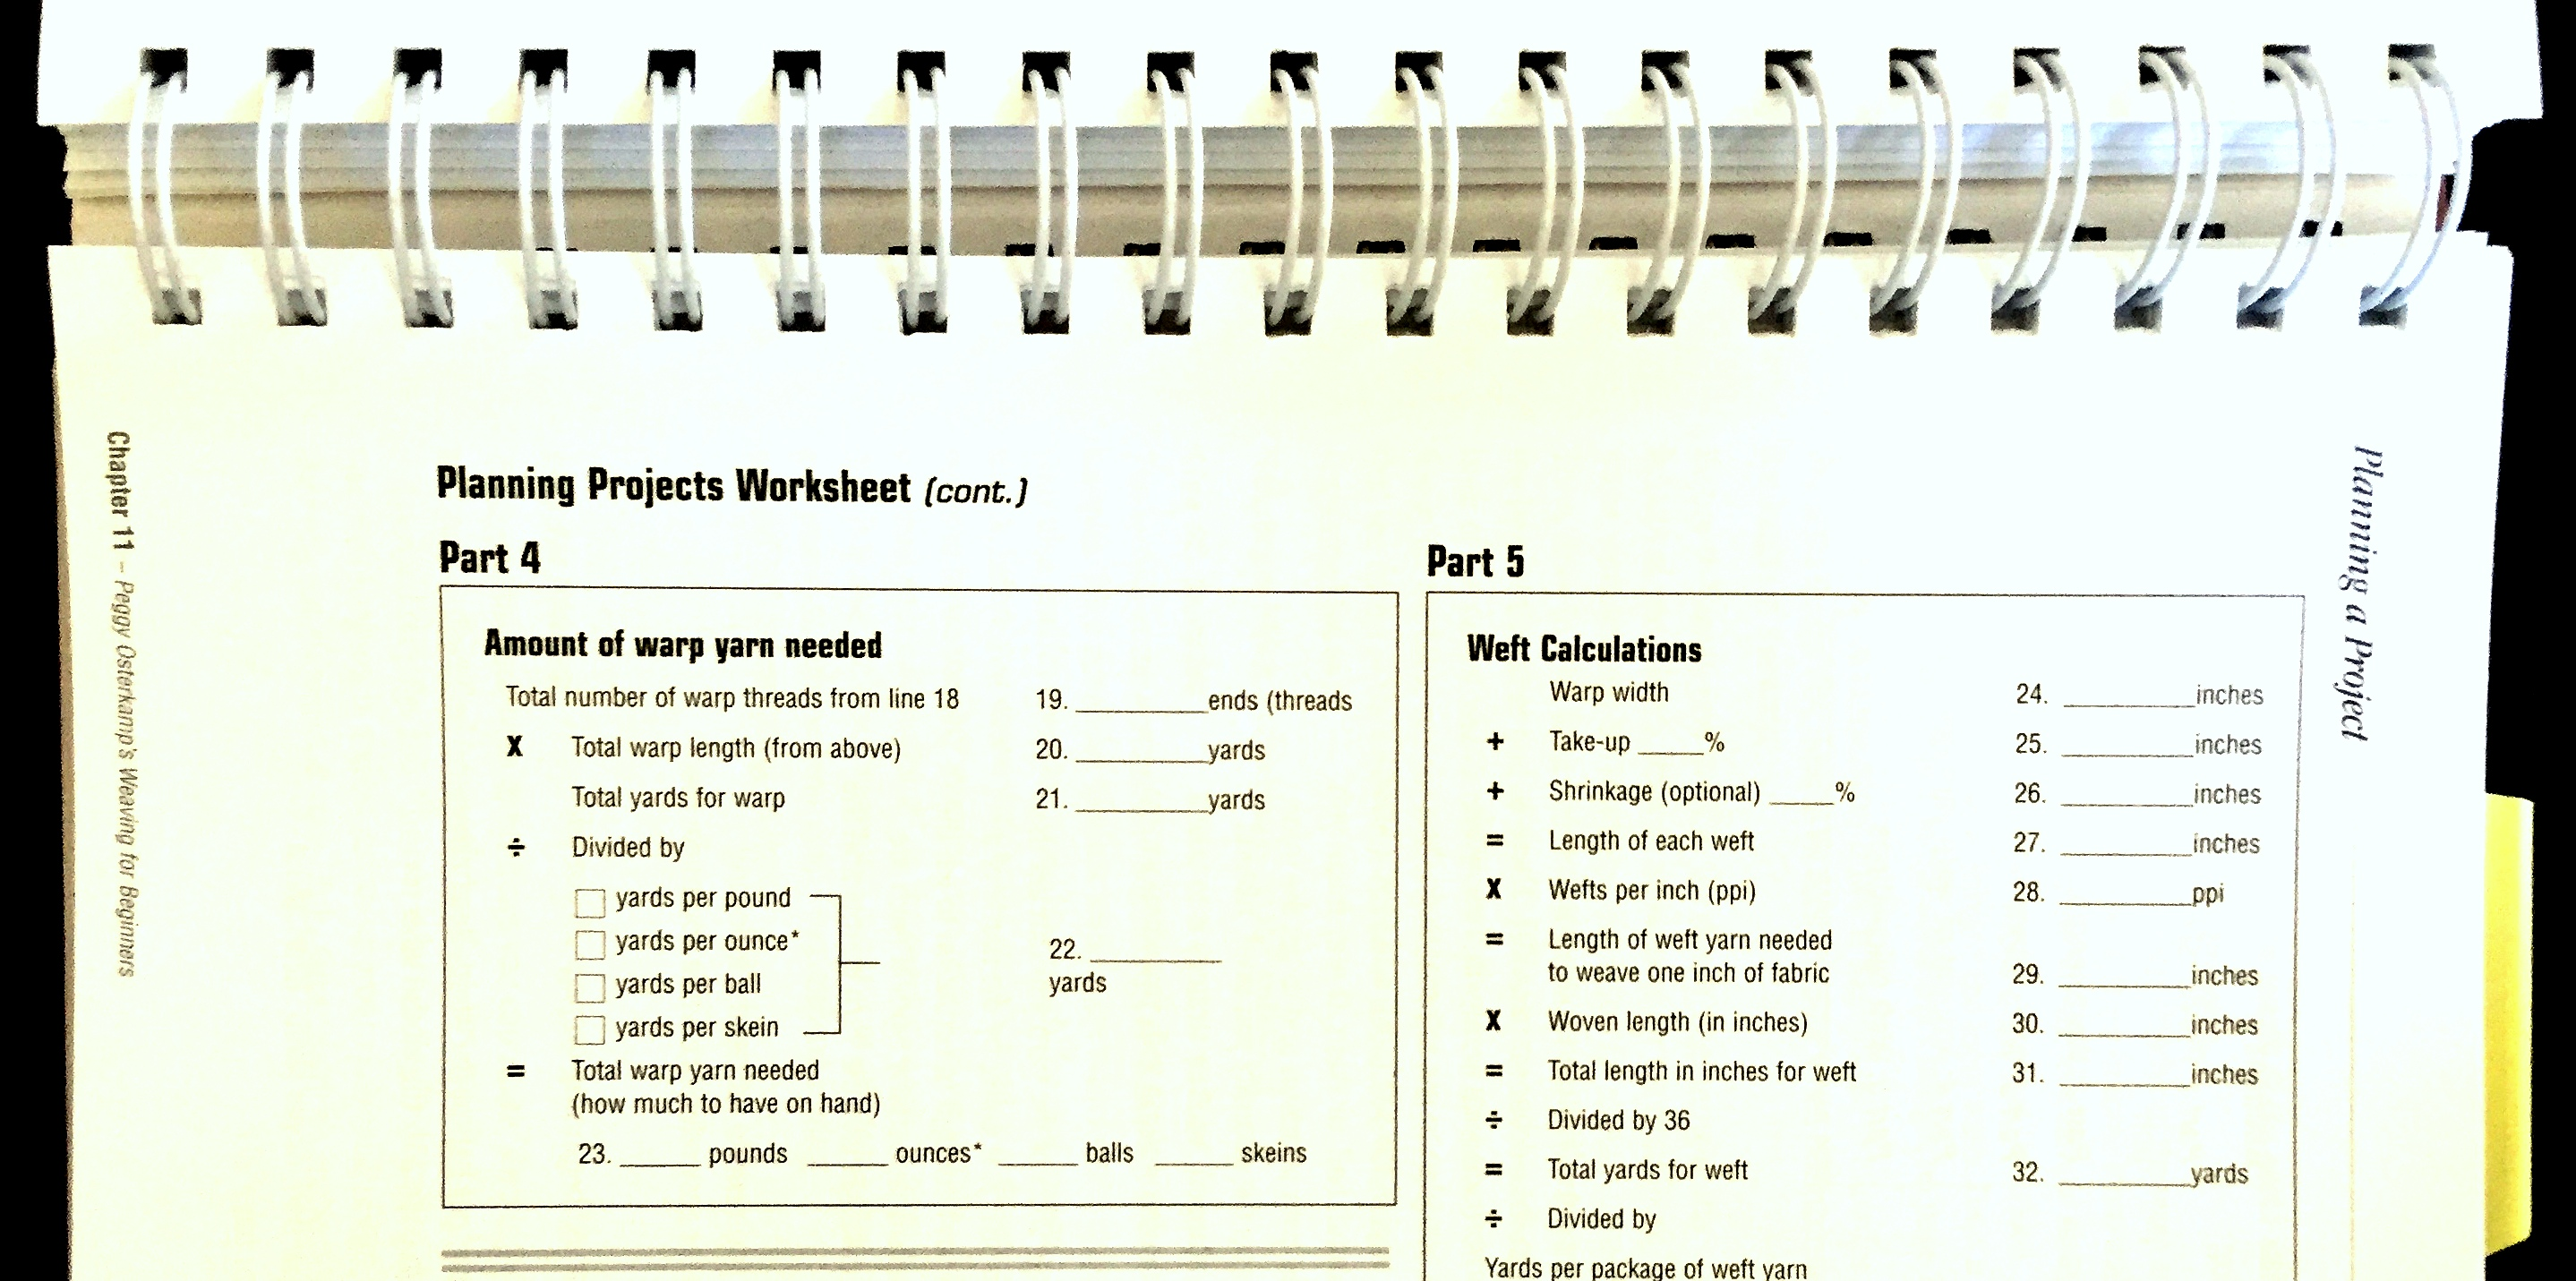 Printables Dying To Be Thin Worksheet Messygracebook Thousands Of Printable Activities